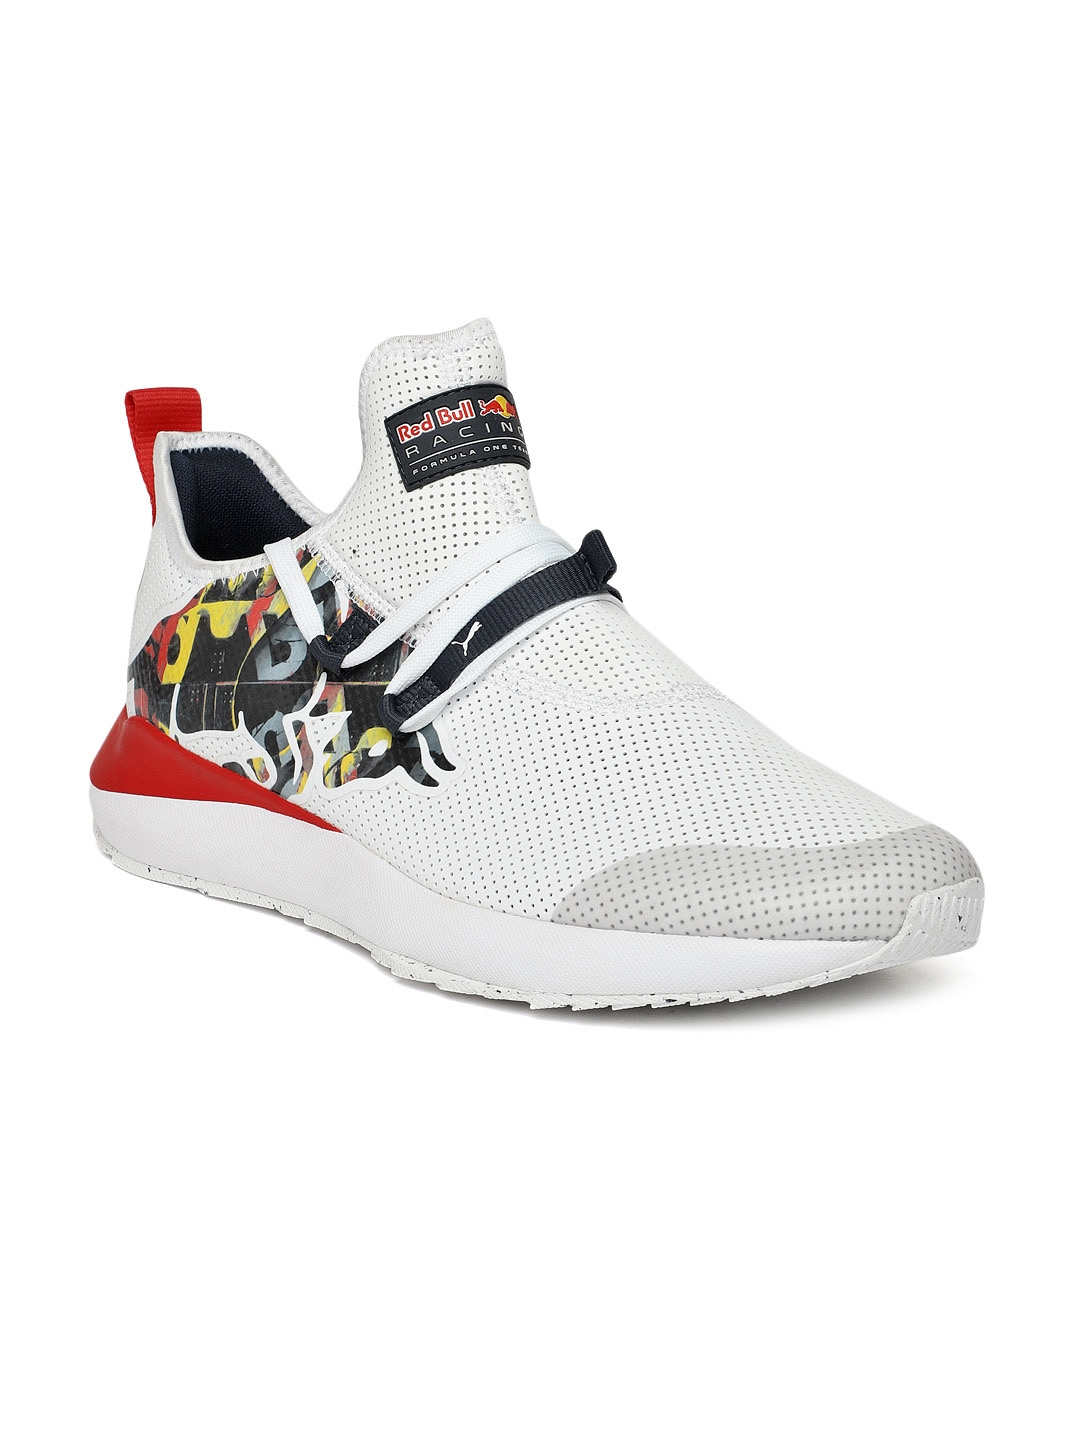 Puma Men White & Red Printed RBR Evo Cat II Bulls Sneakers